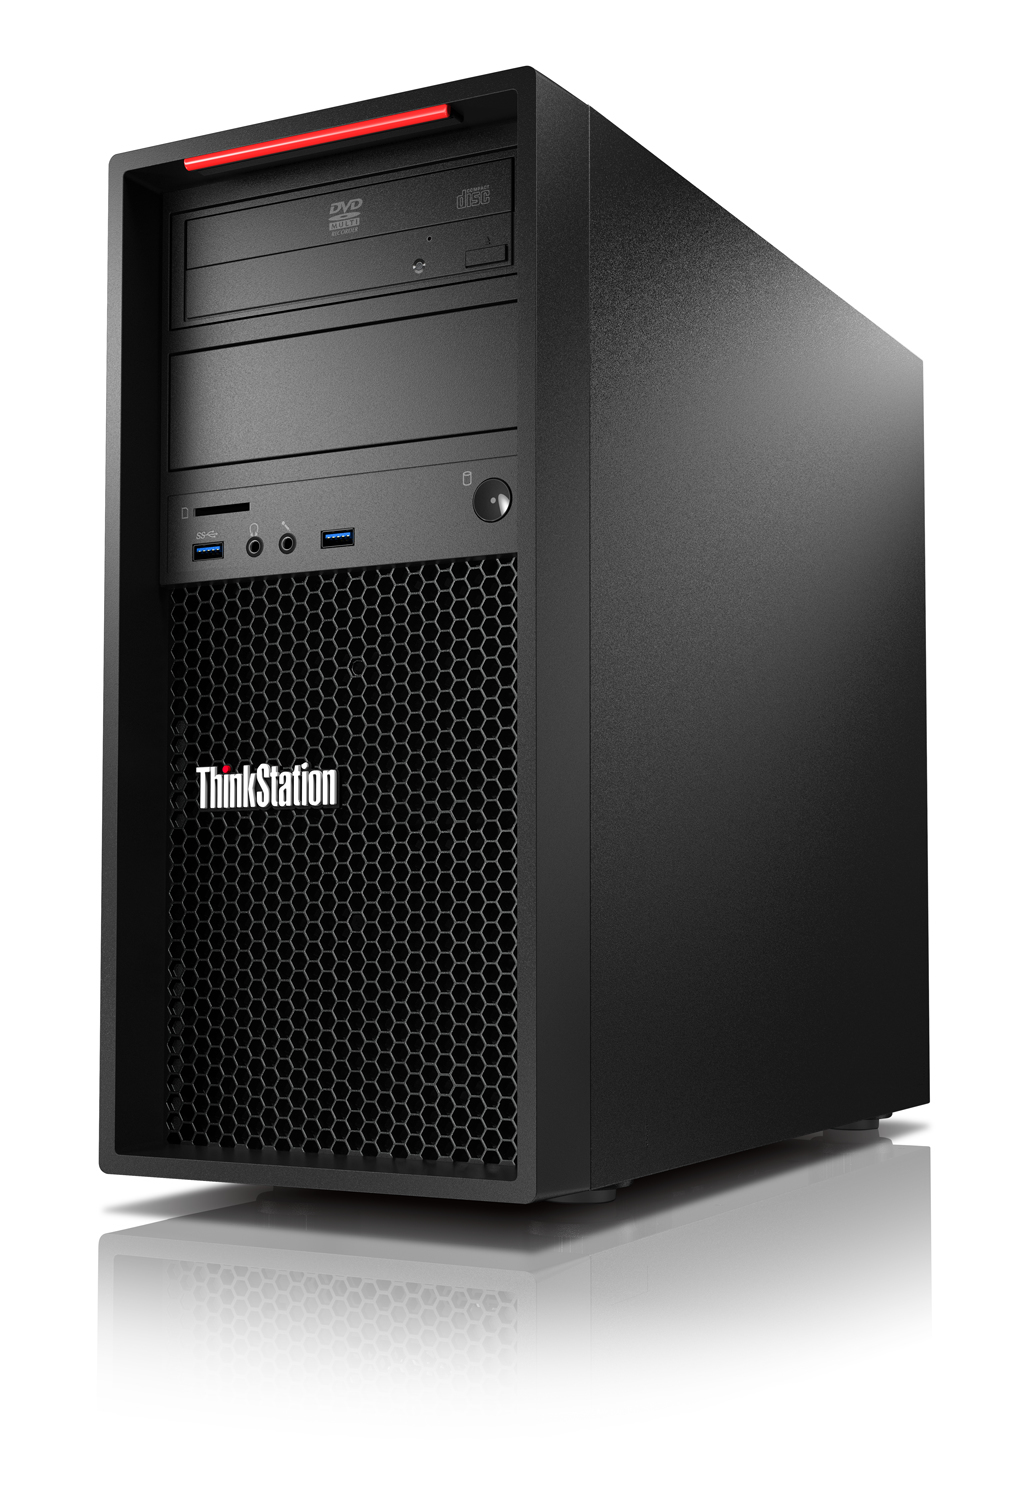 Lenovo ThinkStation P310 3.5GHz E3-1245V5 Tower Black Workstation